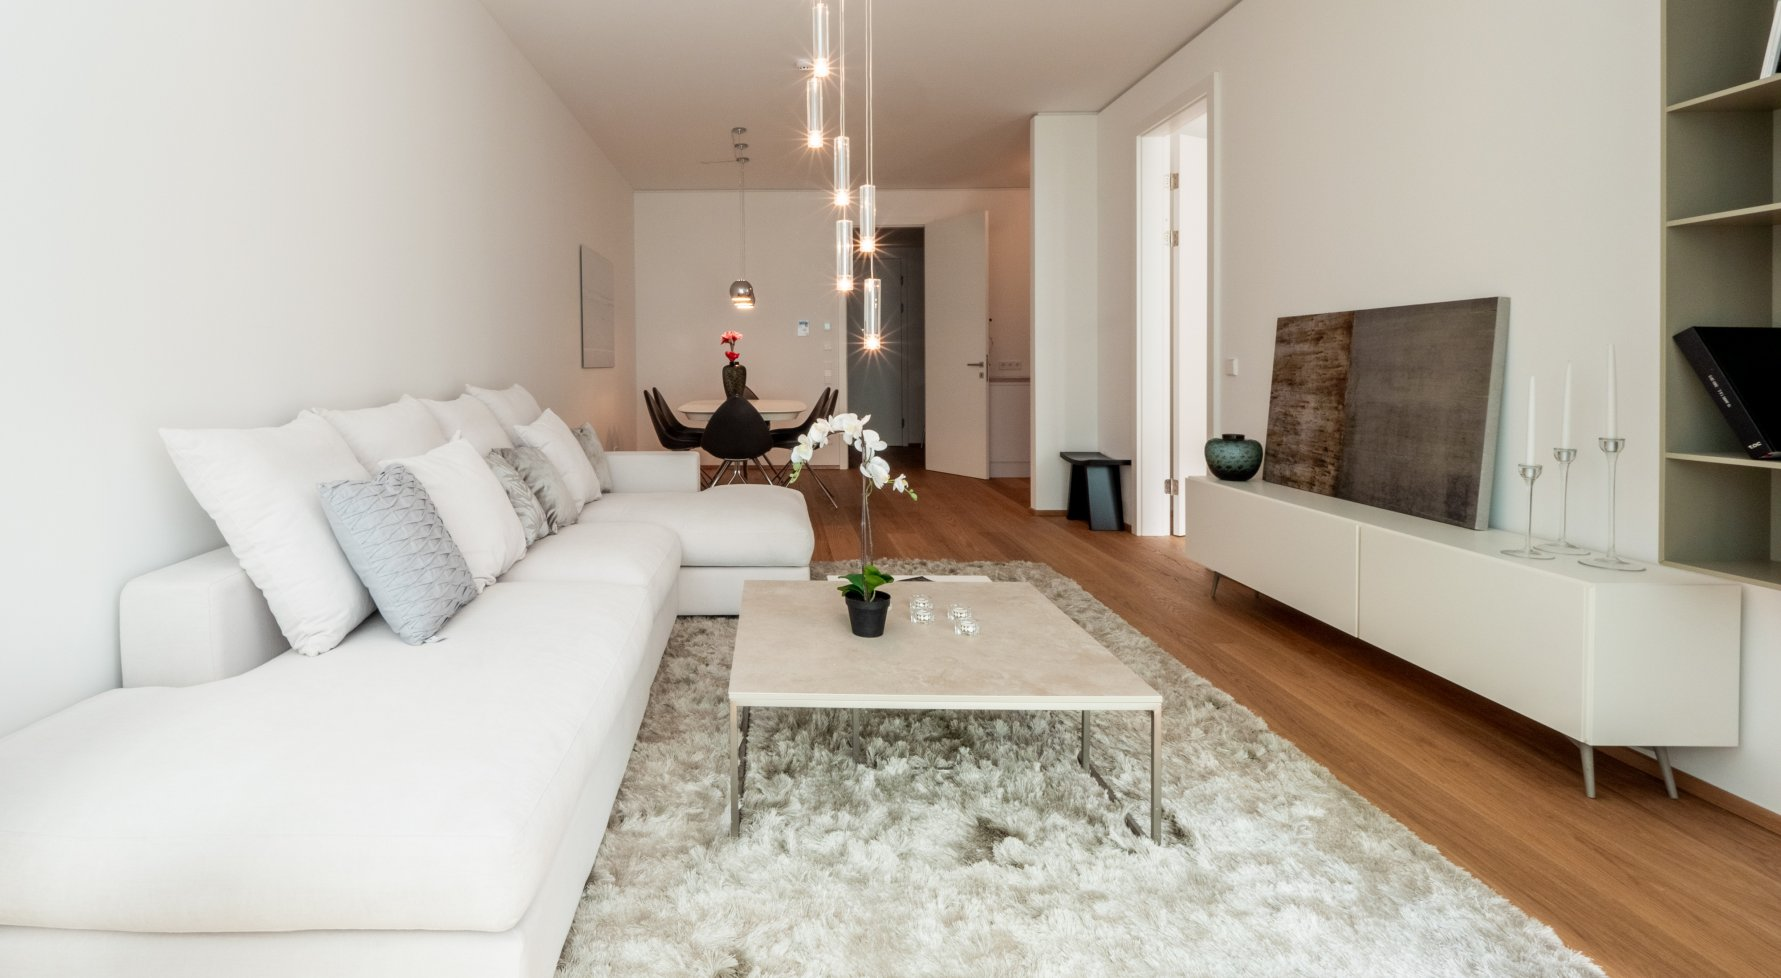 Property in 1030 Wien, 3. Bezirk: The district with a future - urban living close to the city! - picture 1